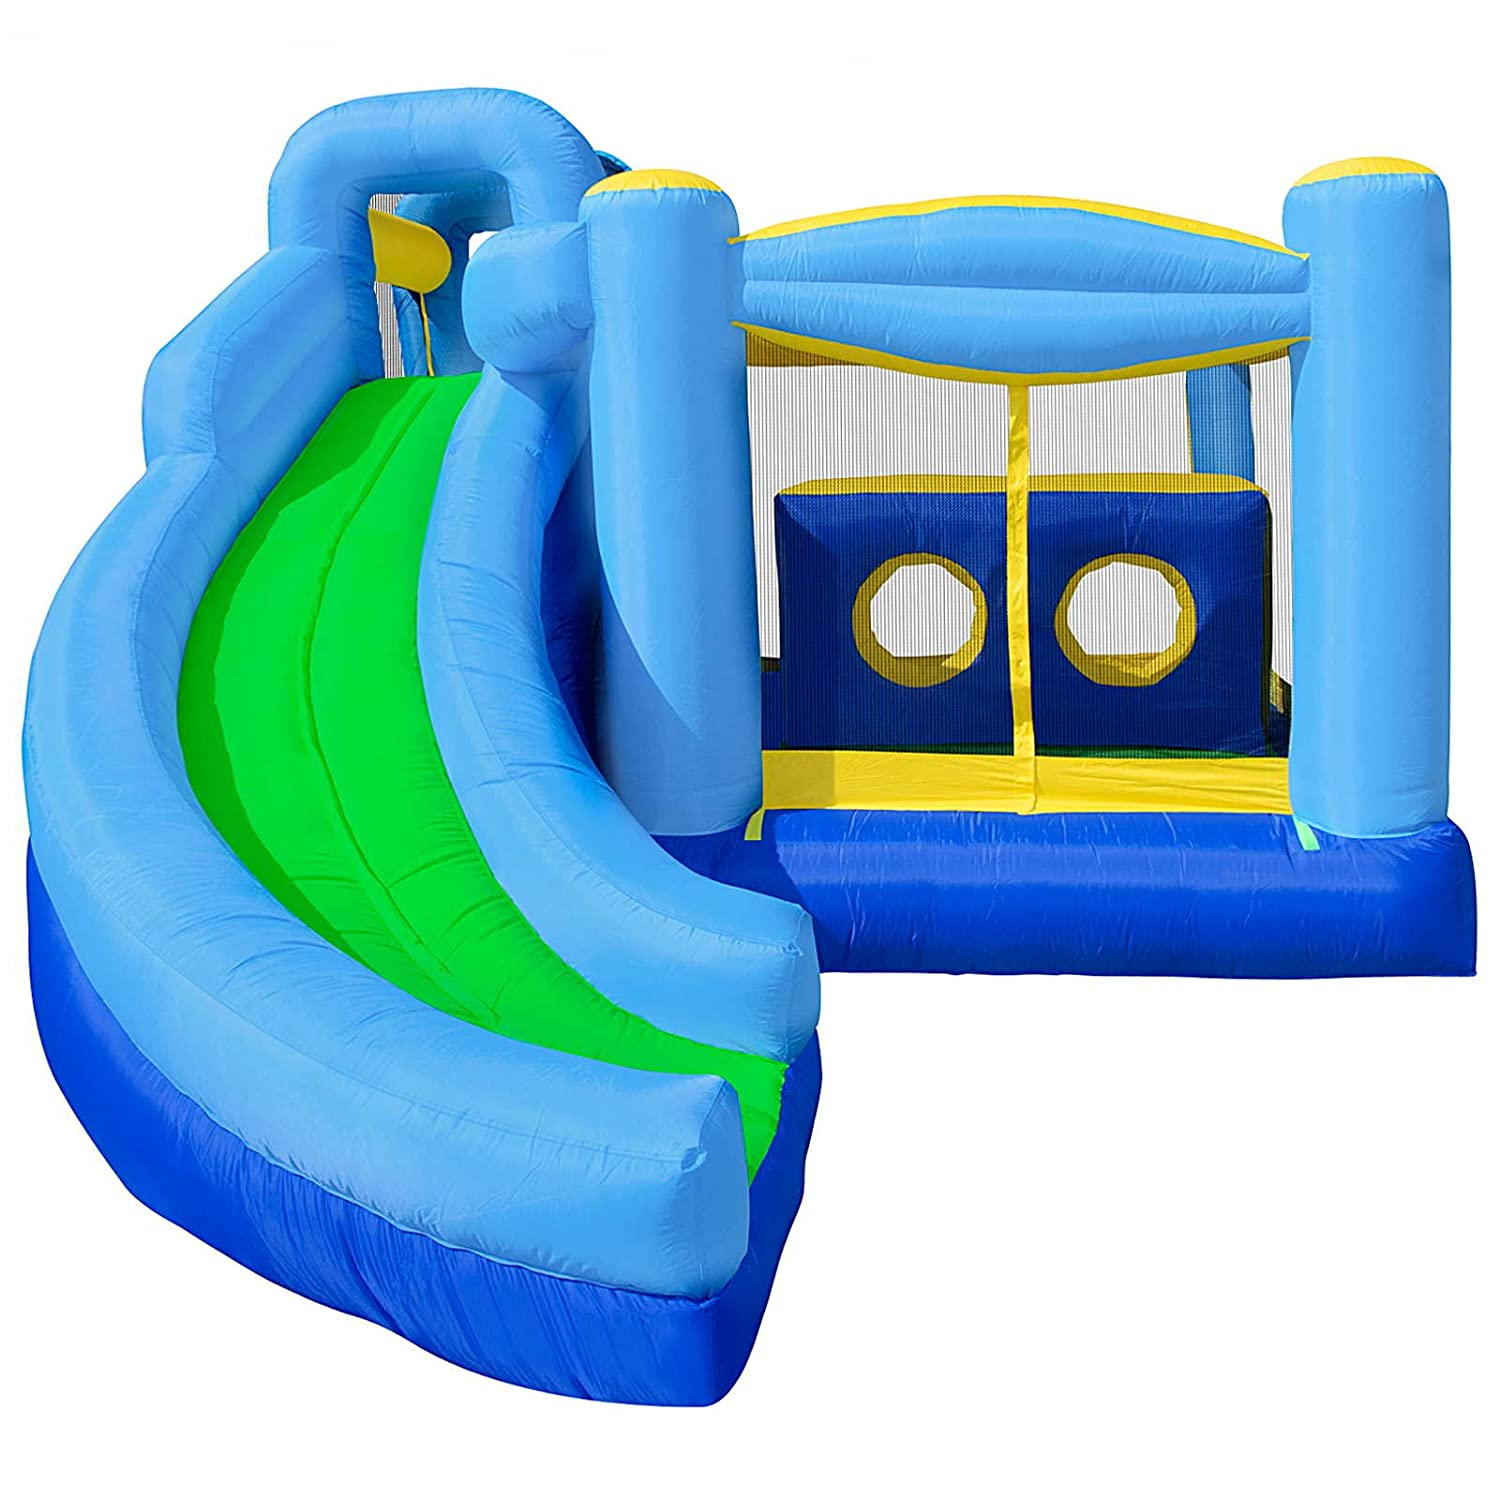 cloud 9 quad bo bounce house inflatable bouncer